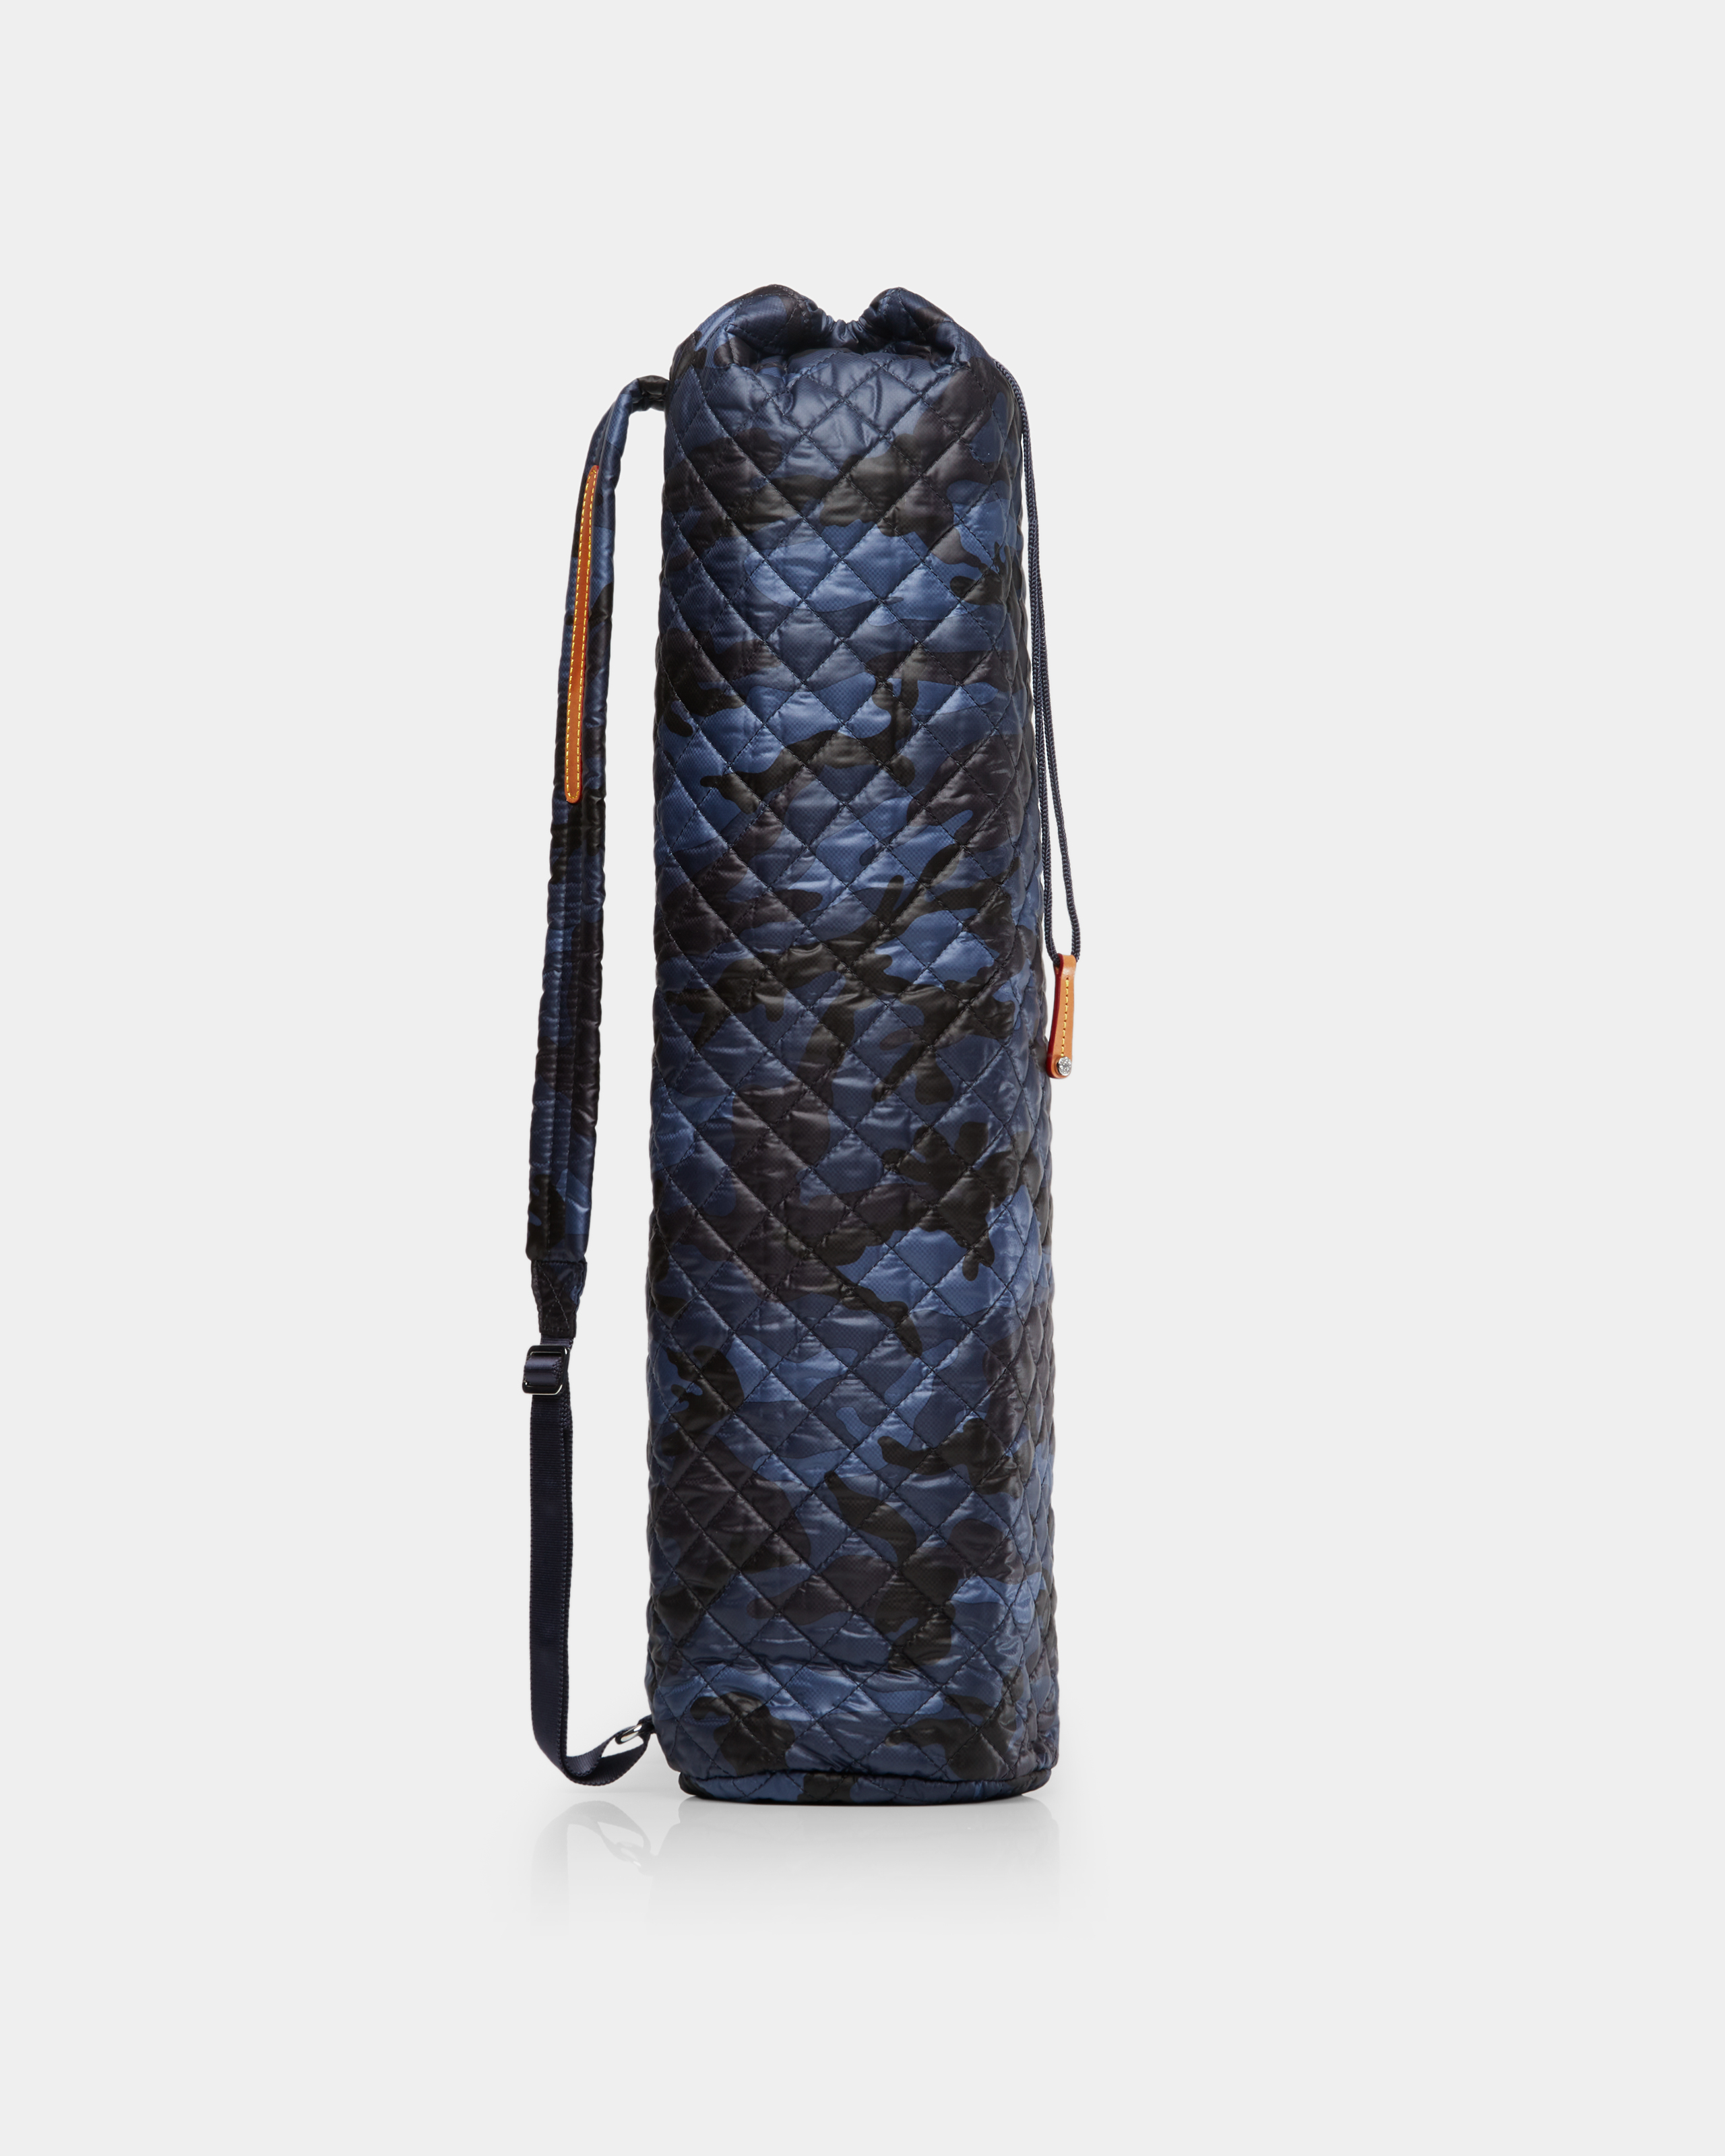 Matt Bag - Dark Blue Camo Oxford (2291311) in color Dark Blue Camo